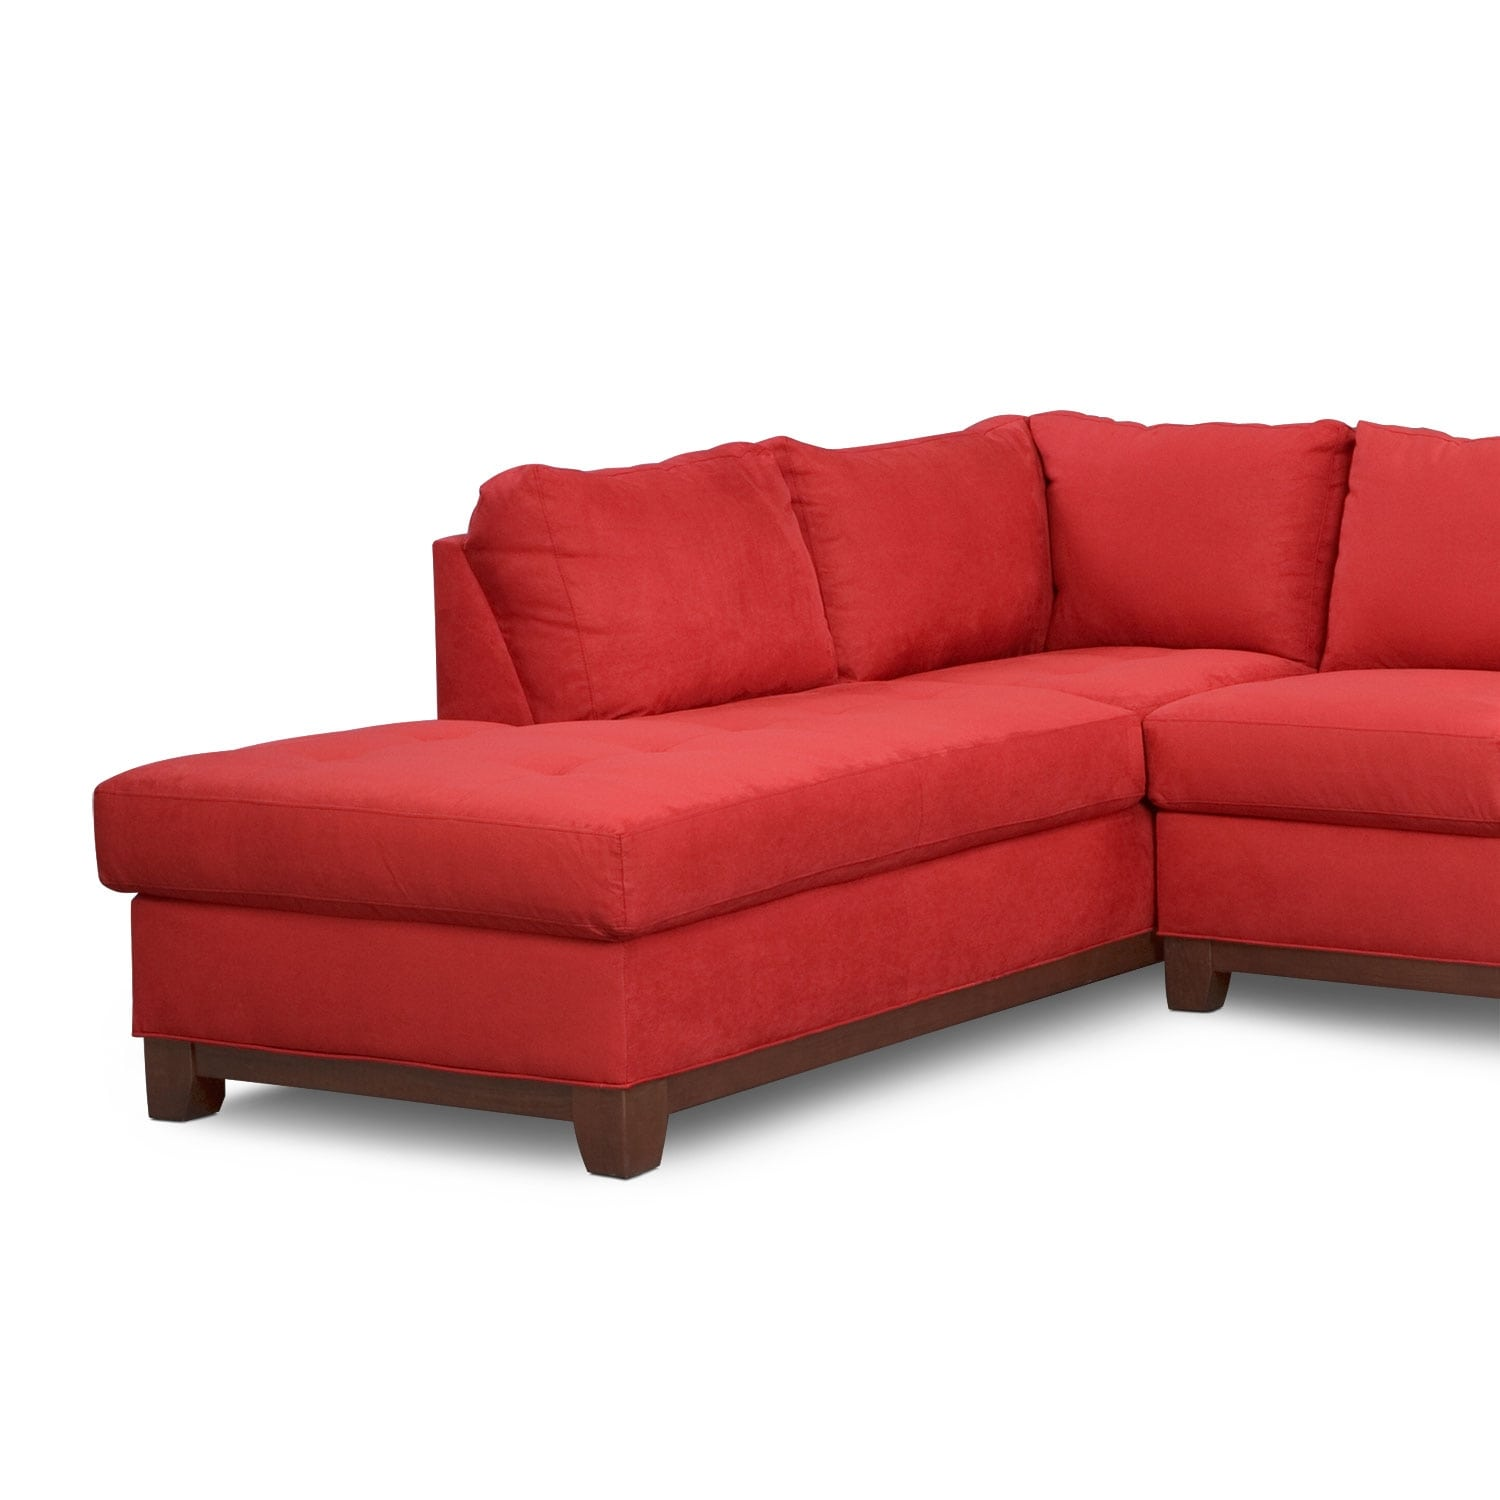 soho 2 piece sectional with left facing chaise red. Black Bedroom Furniture Sets. Home Design Ideas